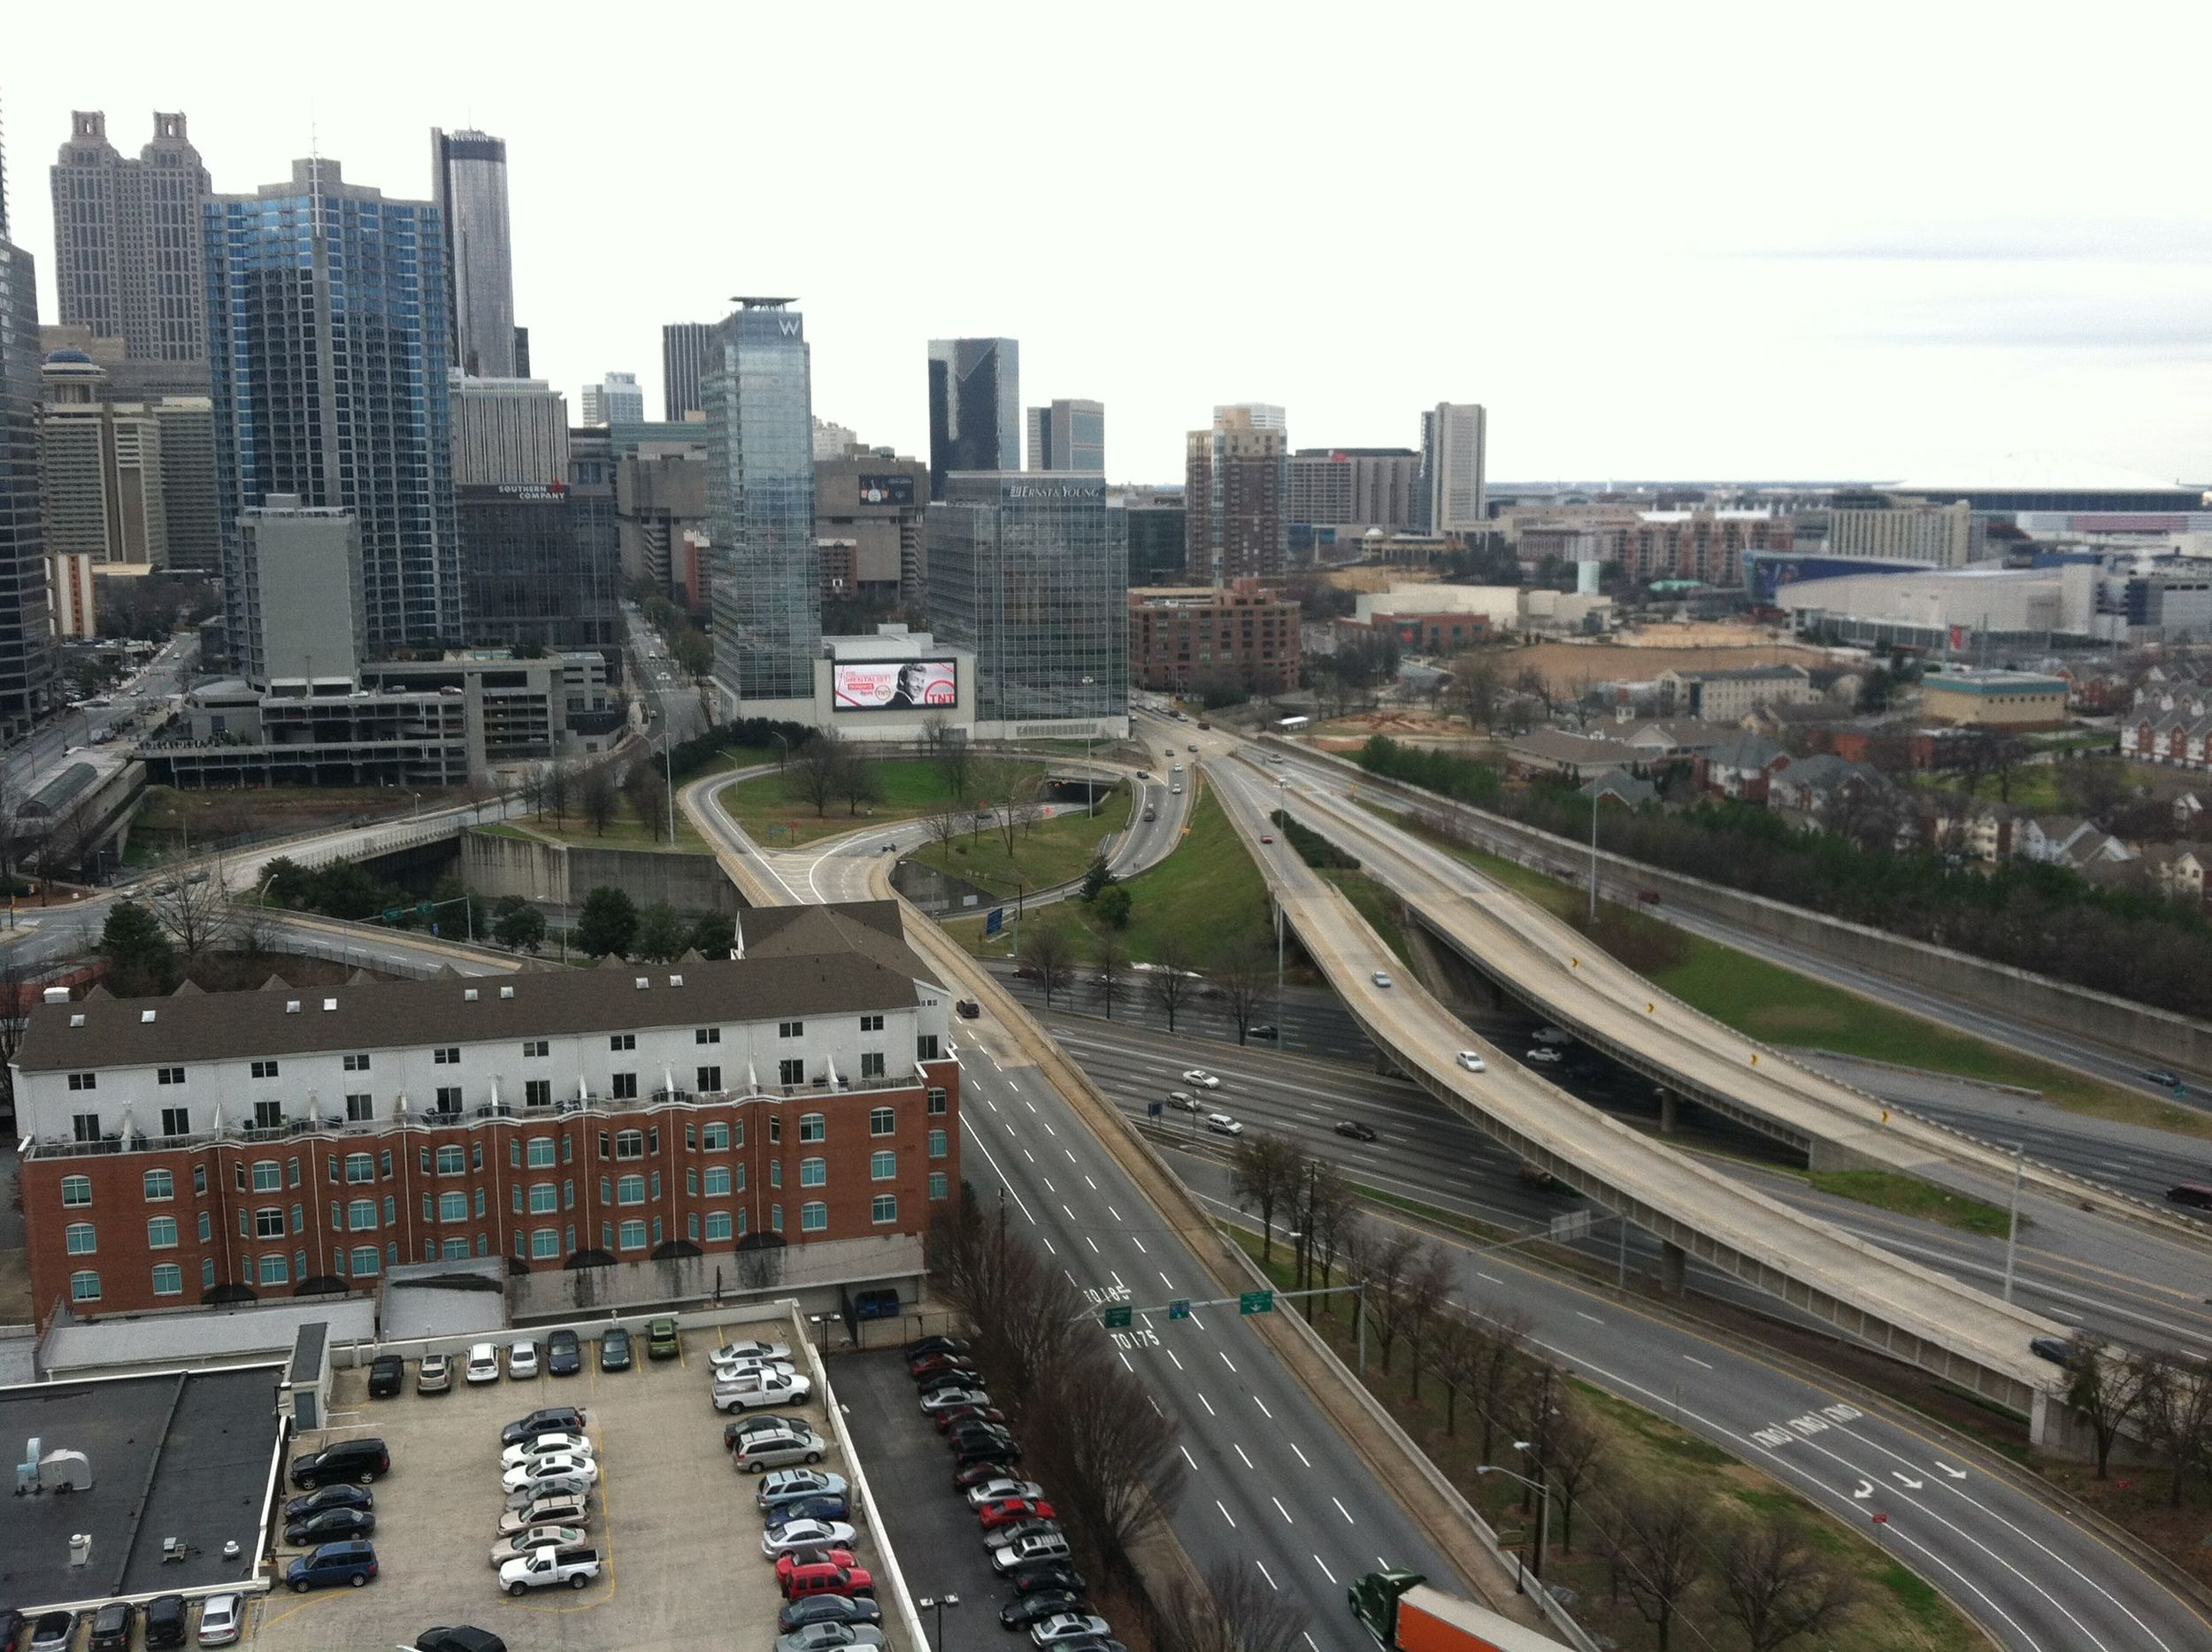 Freeway infrastructure in downtown Atlanta